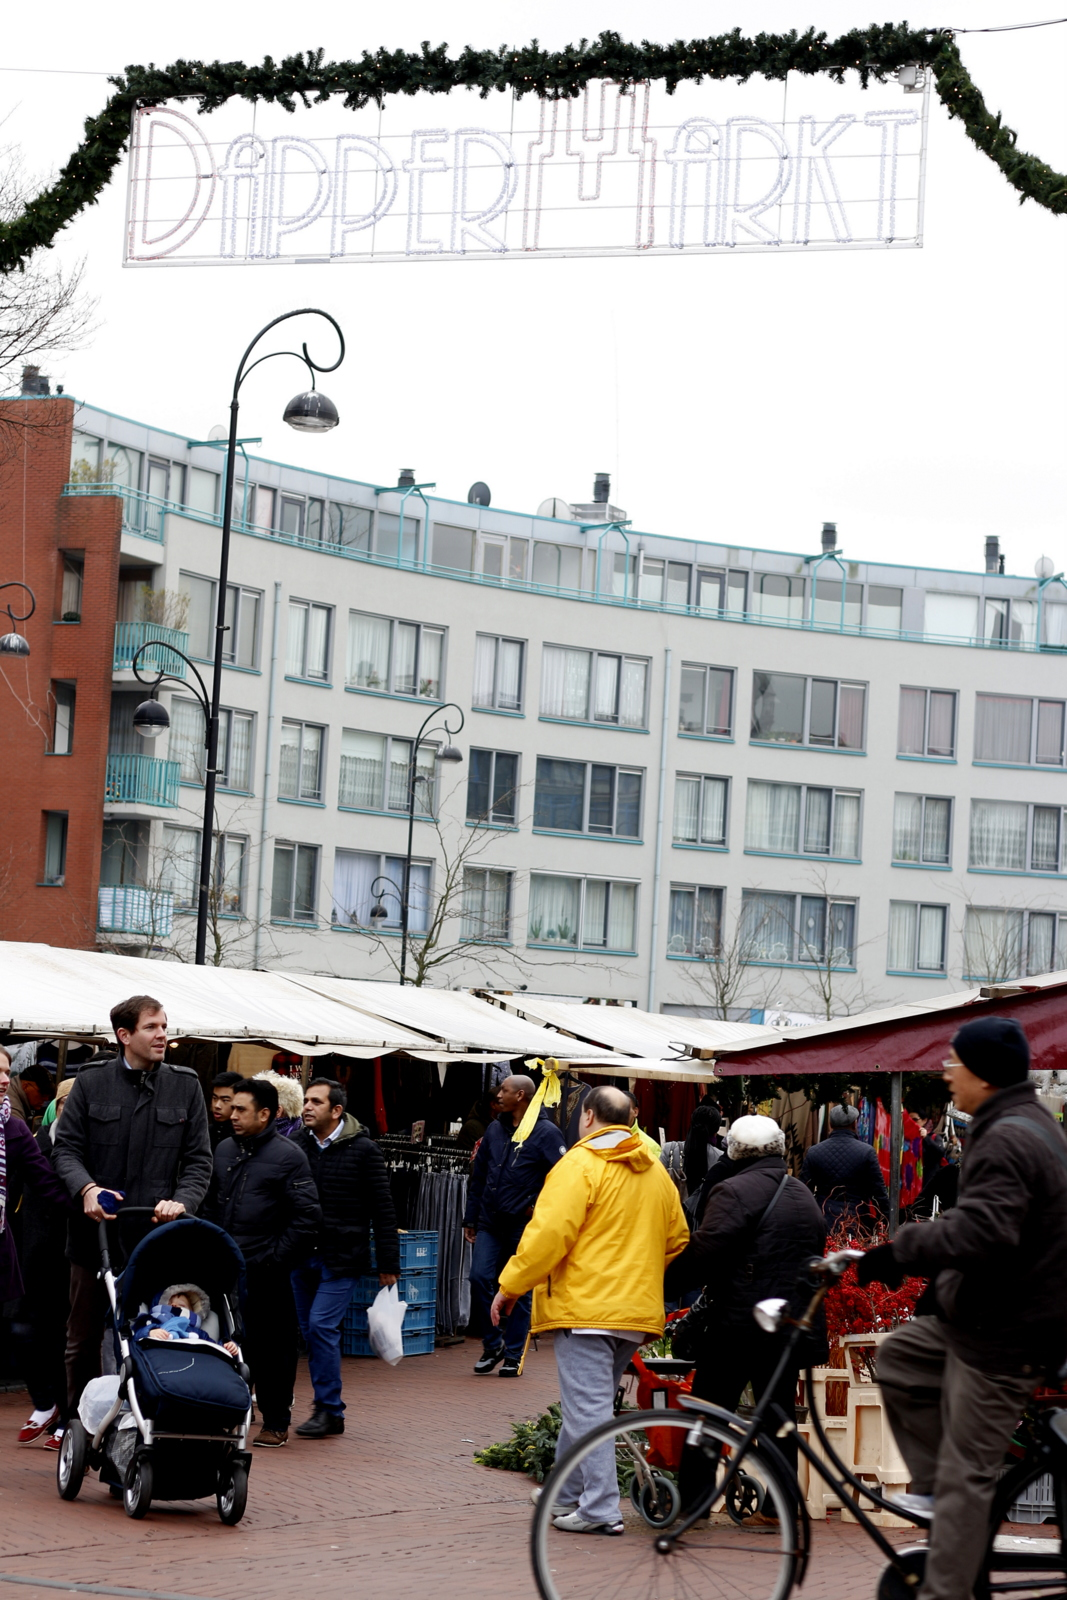 Dappermarkt: From vegetables to bicycle parts to cheese to vintage clothing, there is something for everyone at Amsterdam's weekly street markets.